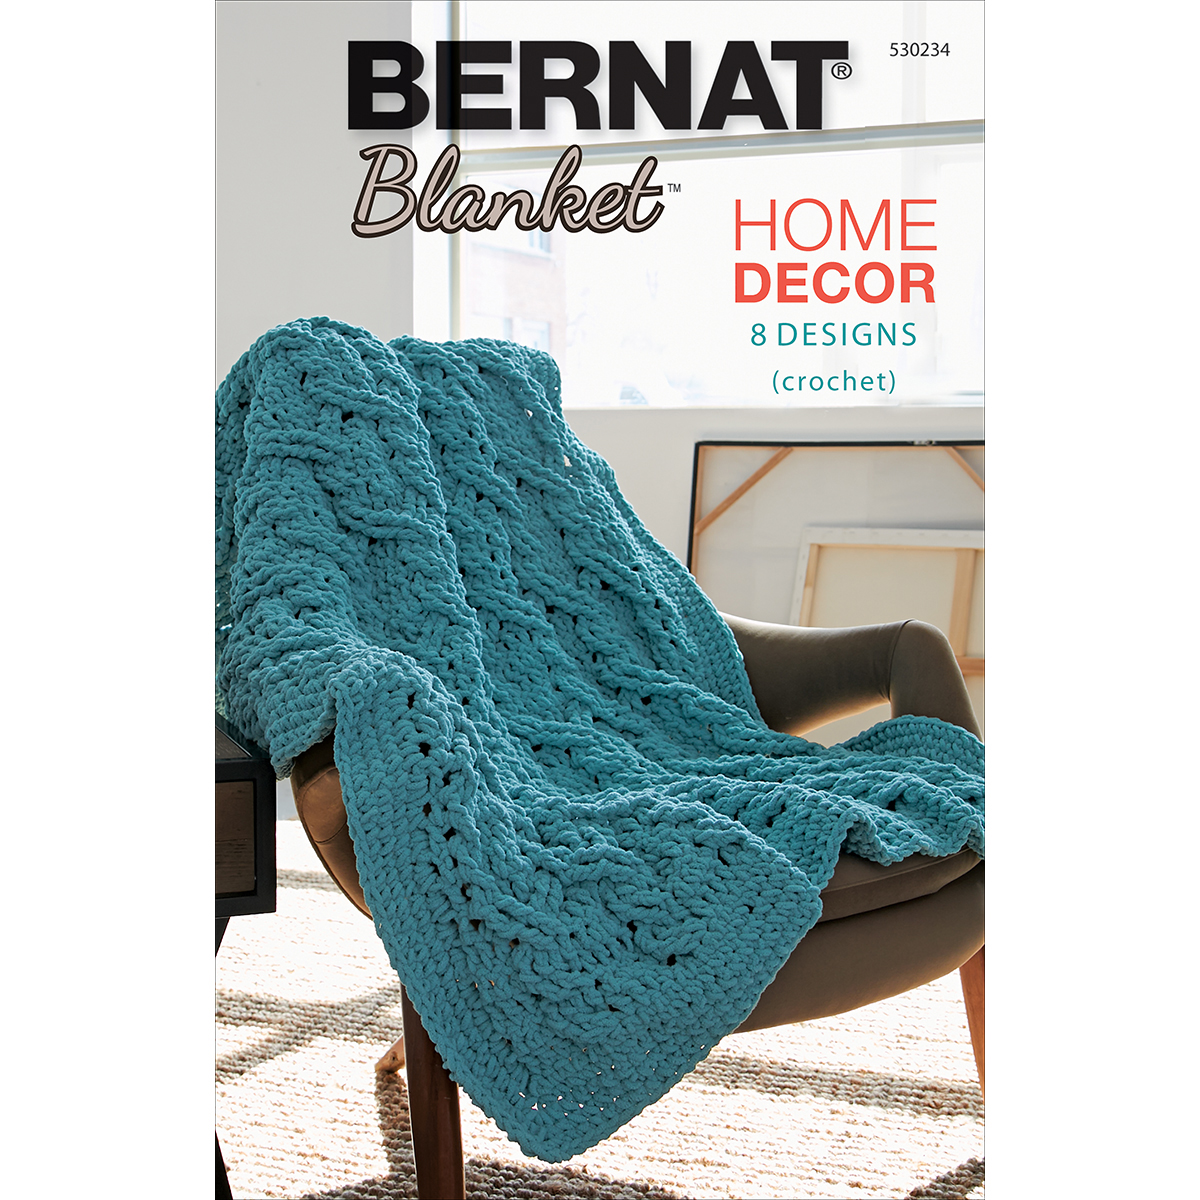 Crochet Patterns For Bernat Blanket Yarn : ... Crochet Patterns ? Crochet Books Home DEcor ? Bernat Blanket Home